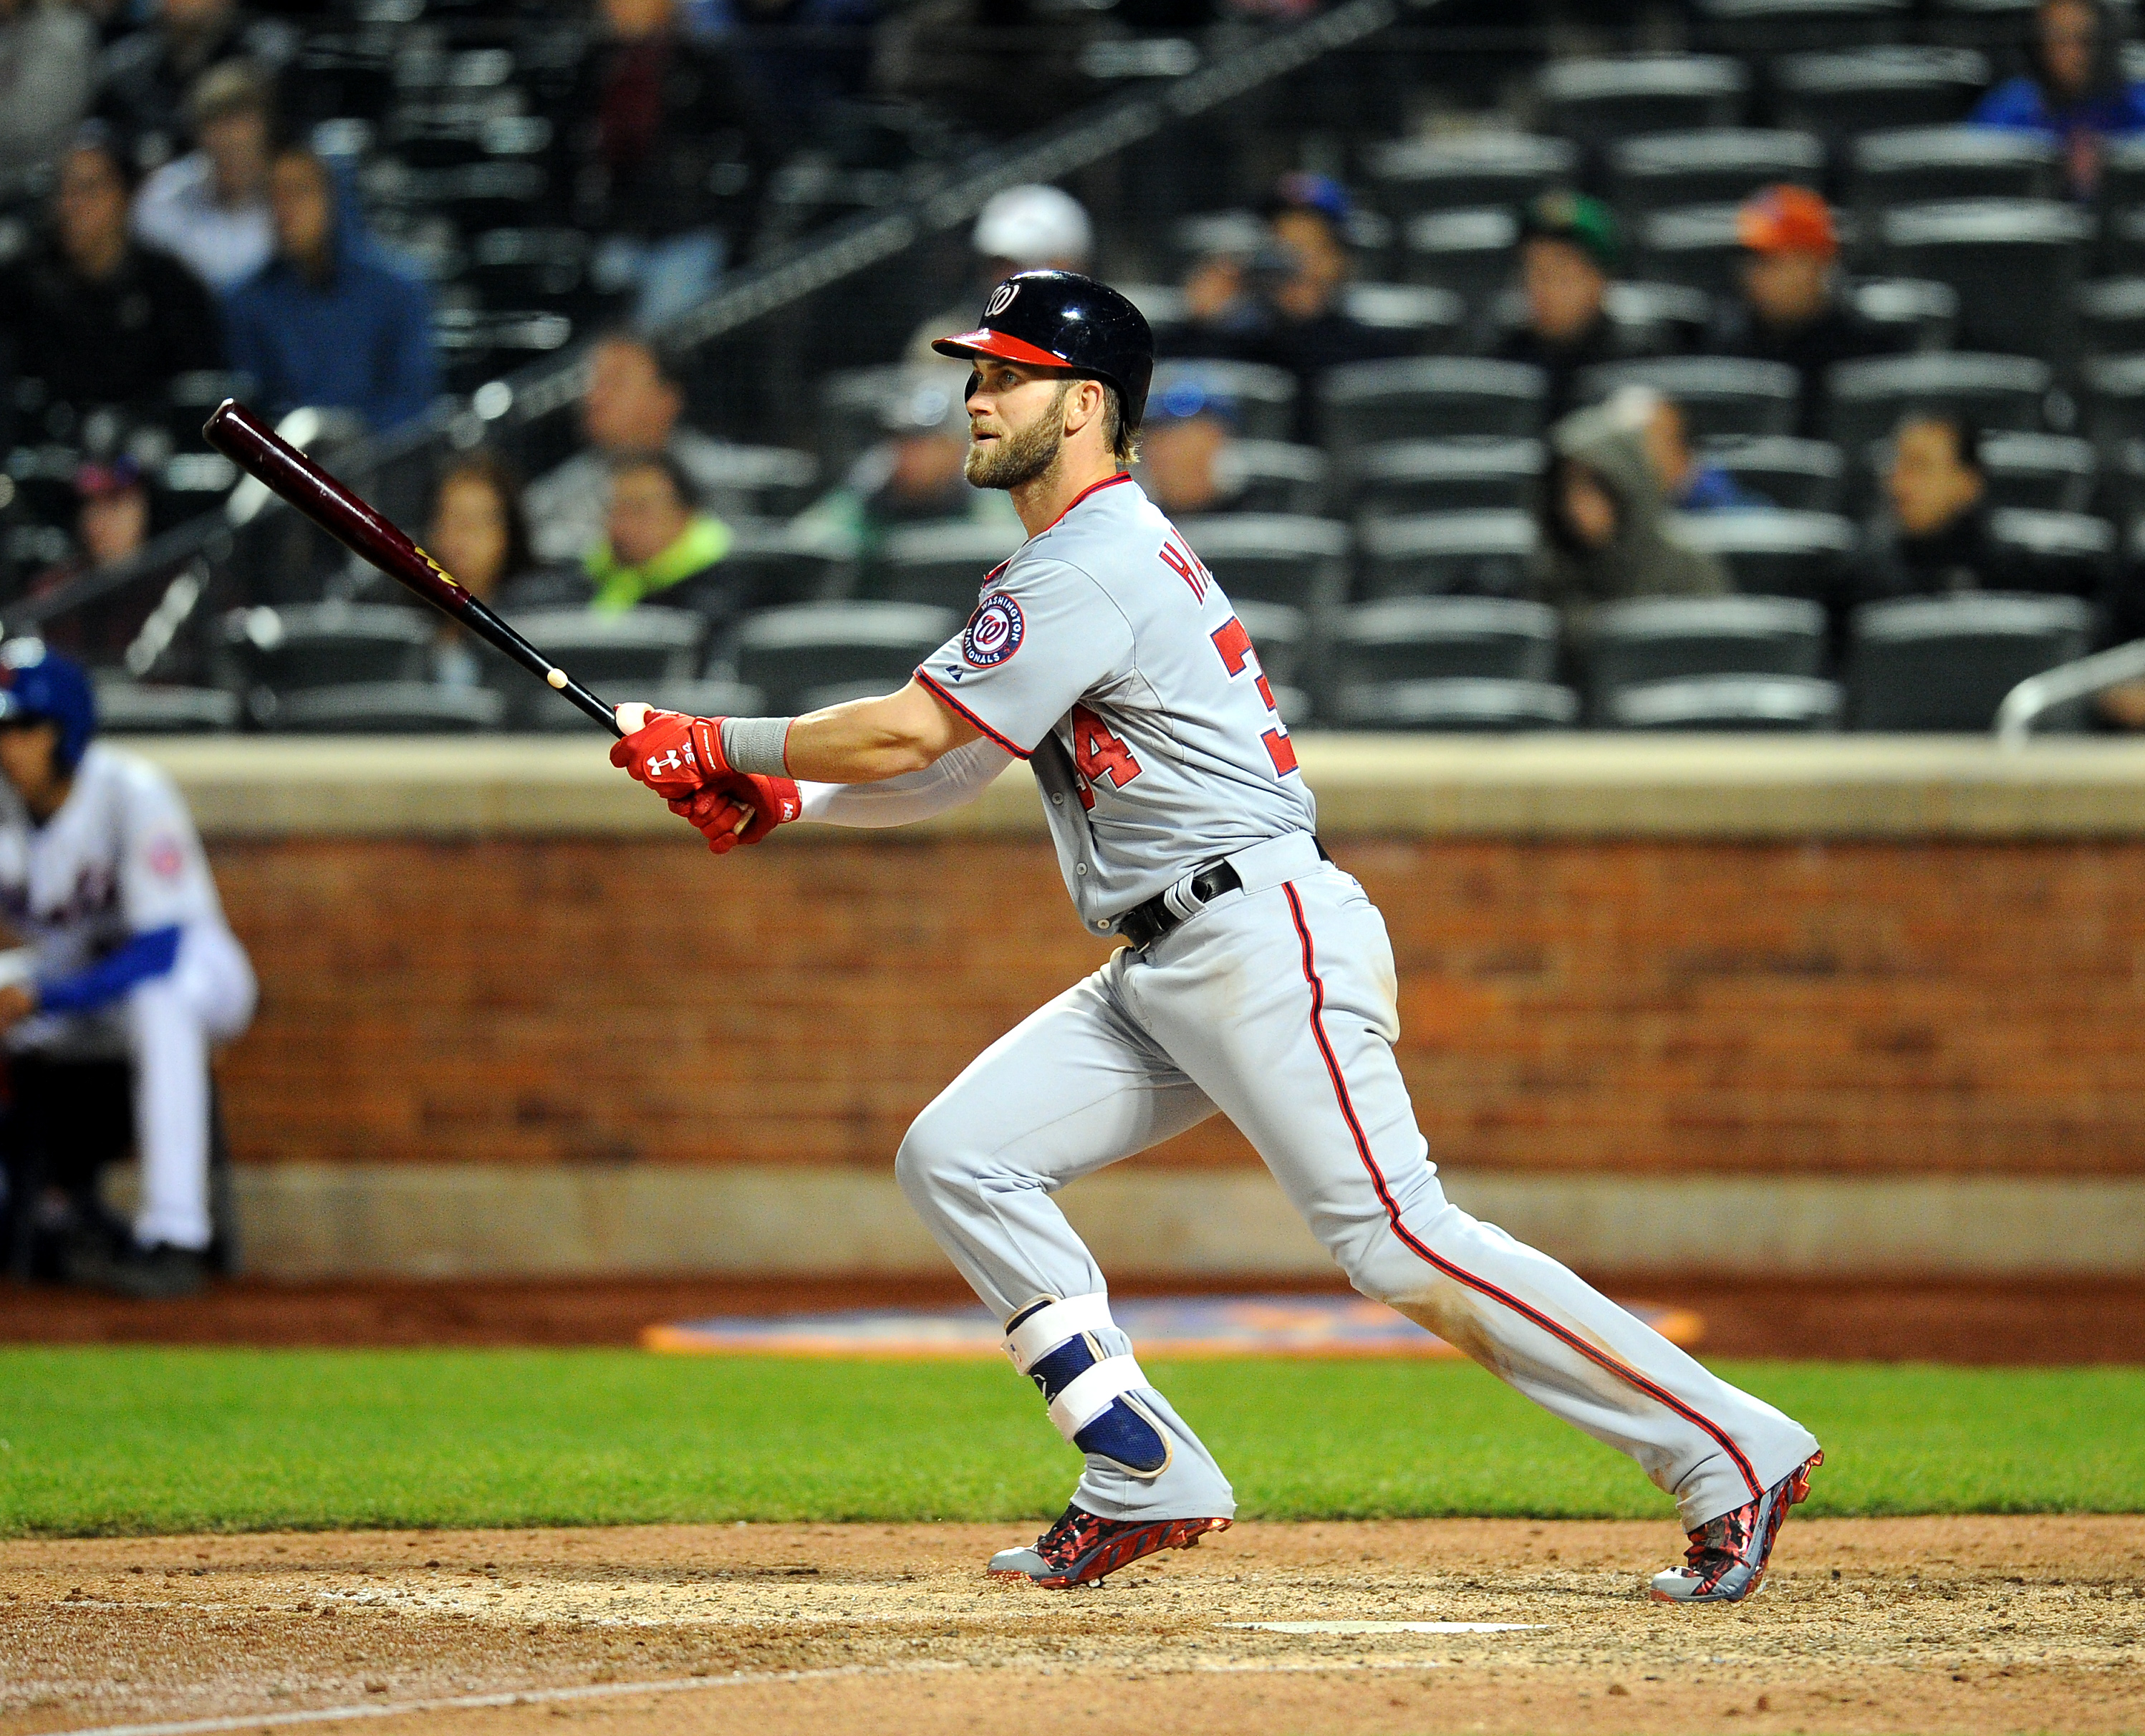 04/30/15  Washington Nationals vs New York Mets  at  Citifield  ,Queens   N.Y.     Washington Nationals  lead   8-2   during  the  9th  inning  Washington Nationals right fielder Bryce Harper #34 hits a   3 rbi  double in the  9th  inning  photos  by  Sportsdaywire